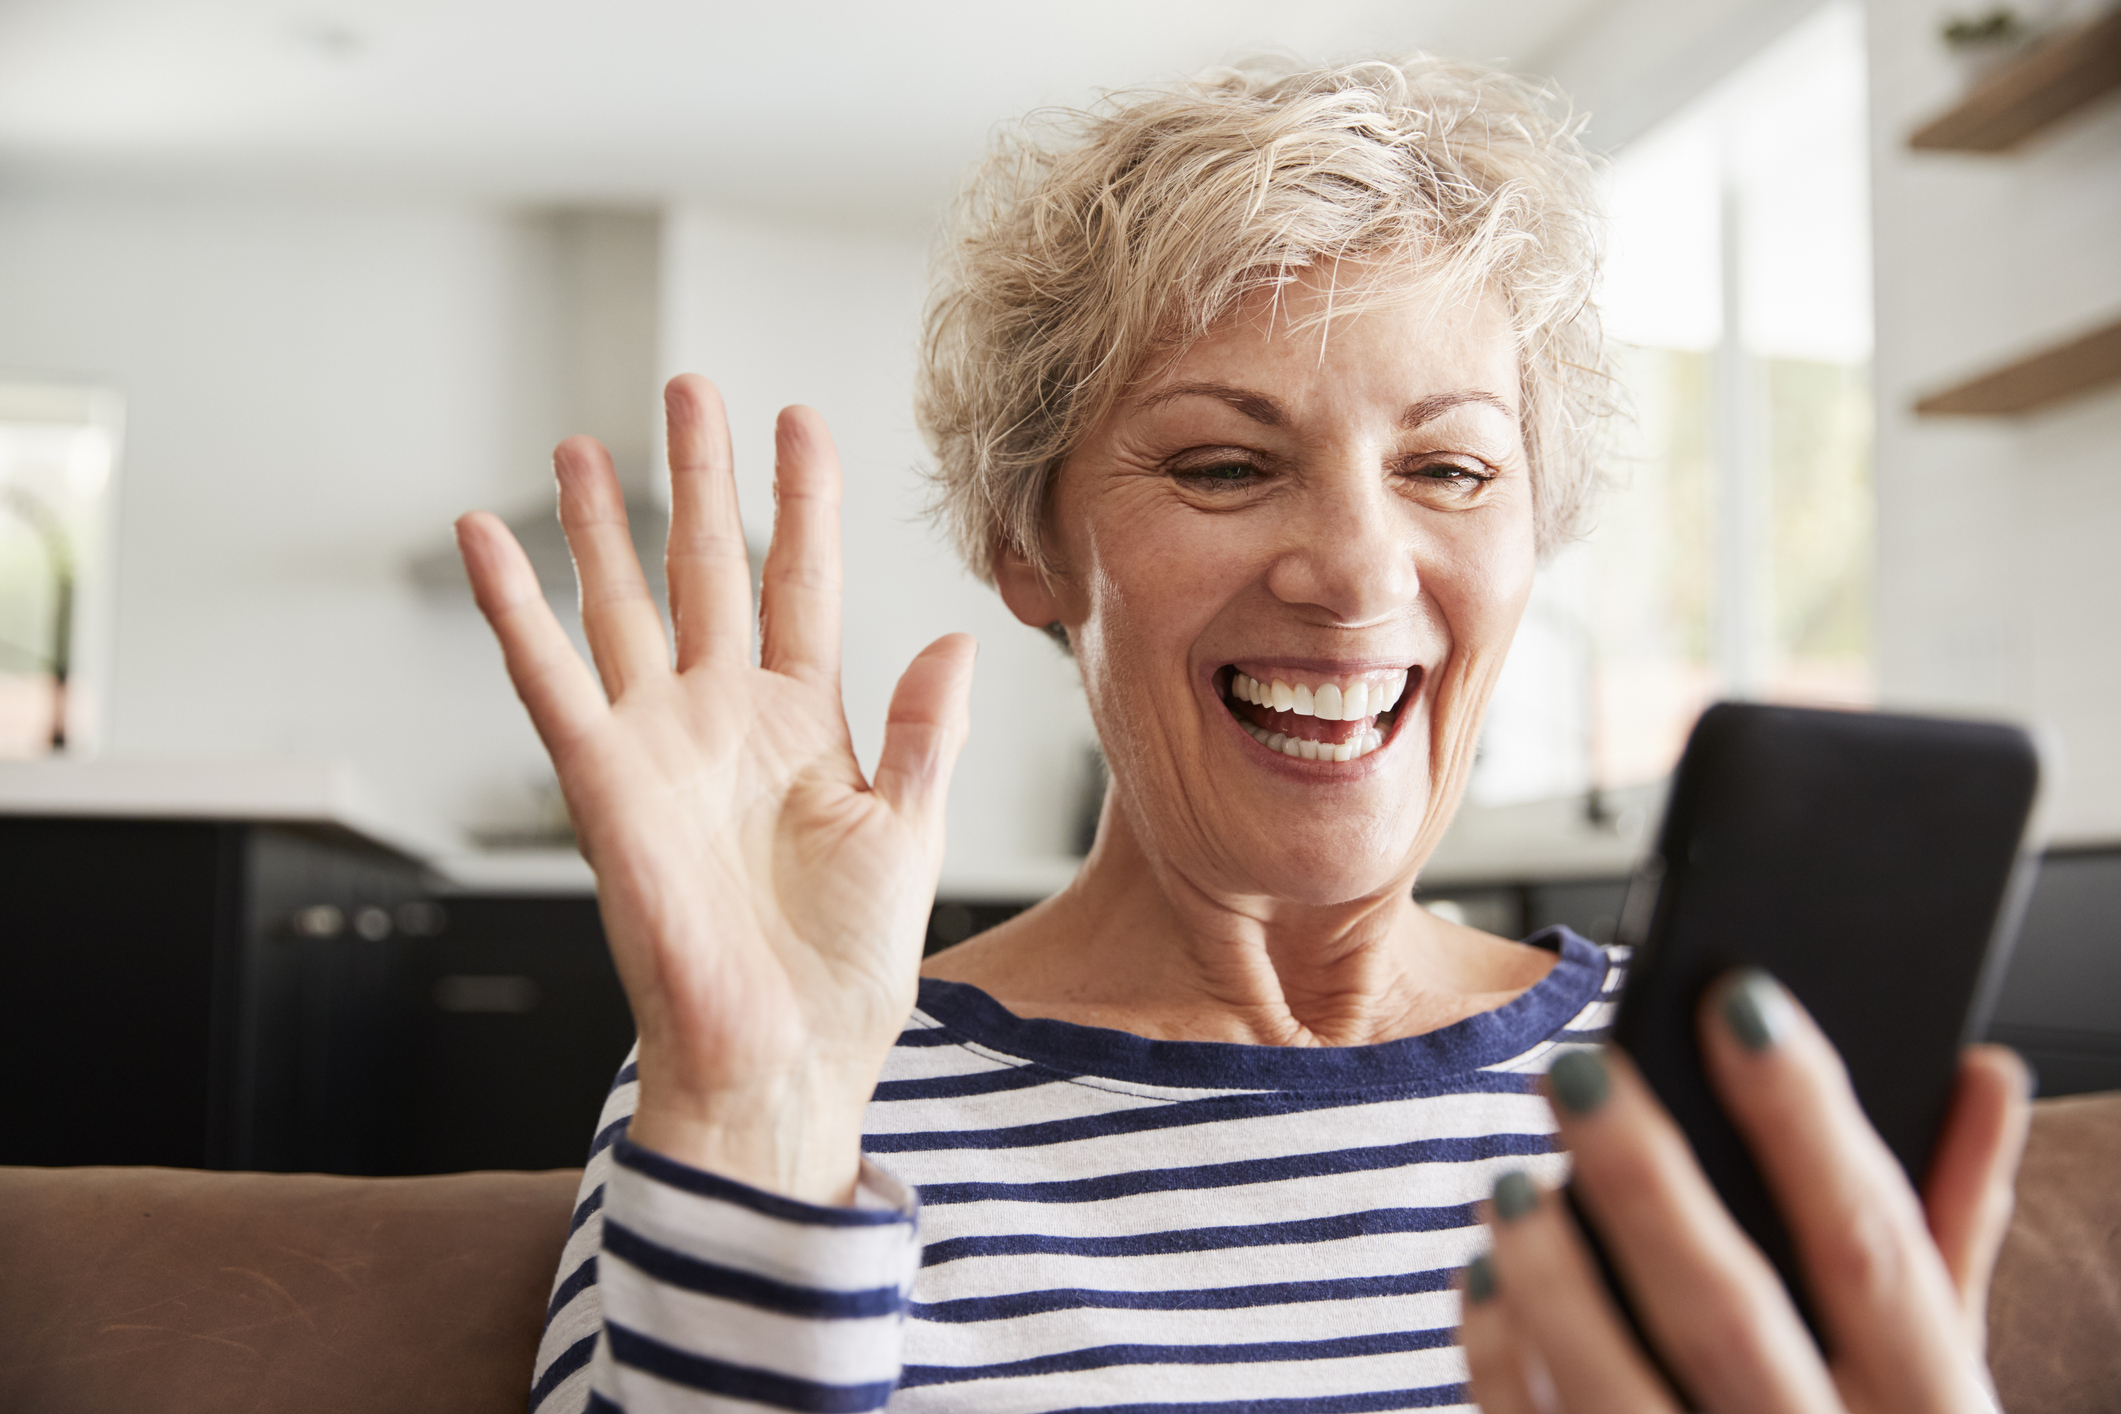 Teach your senior how to properly use their phone and take advantage of the many benefits